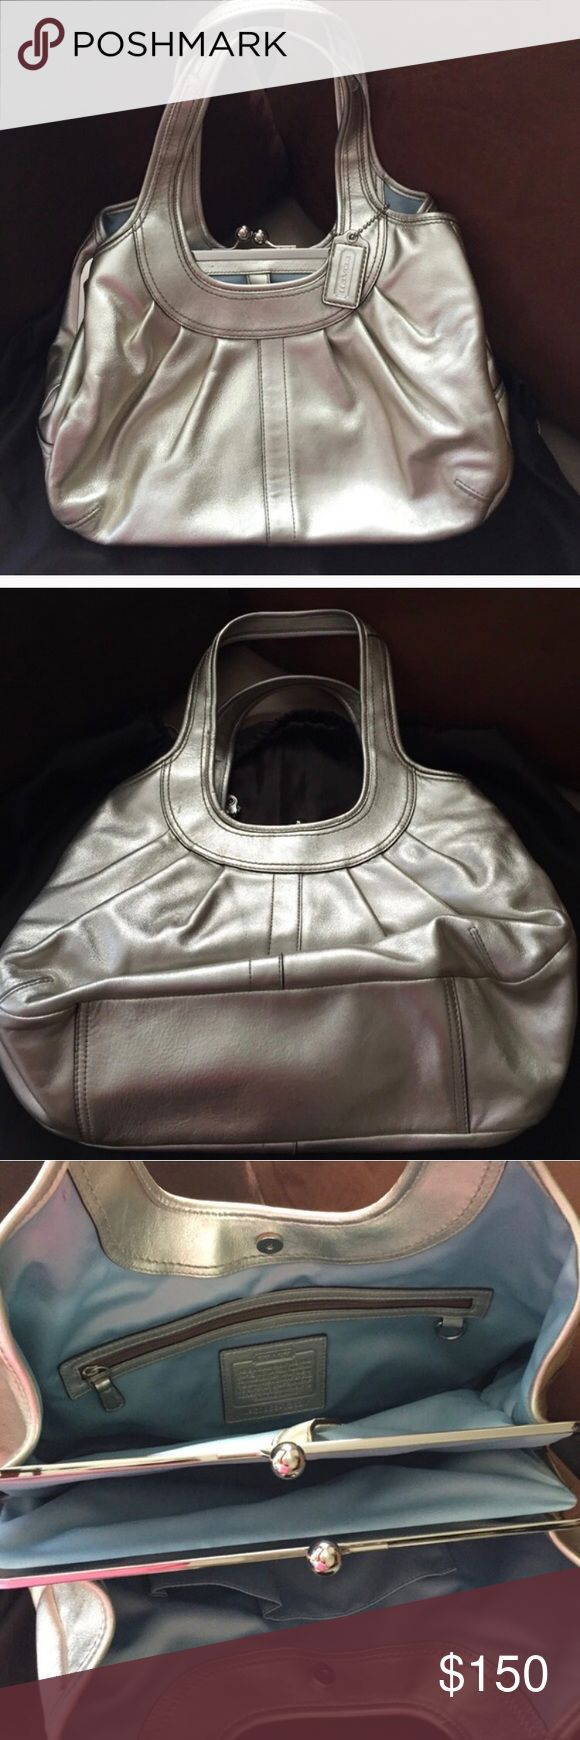 Authentic Coach Silver Shoulder Bag Authentic Coach Silver Shoulder Bag with light blue lining and 3 compartments as seen in pictures. Used twice for baby showers. In excellent condition as seen in pictures. Smoke free pet free home. Coach Bags Shoulder Bags